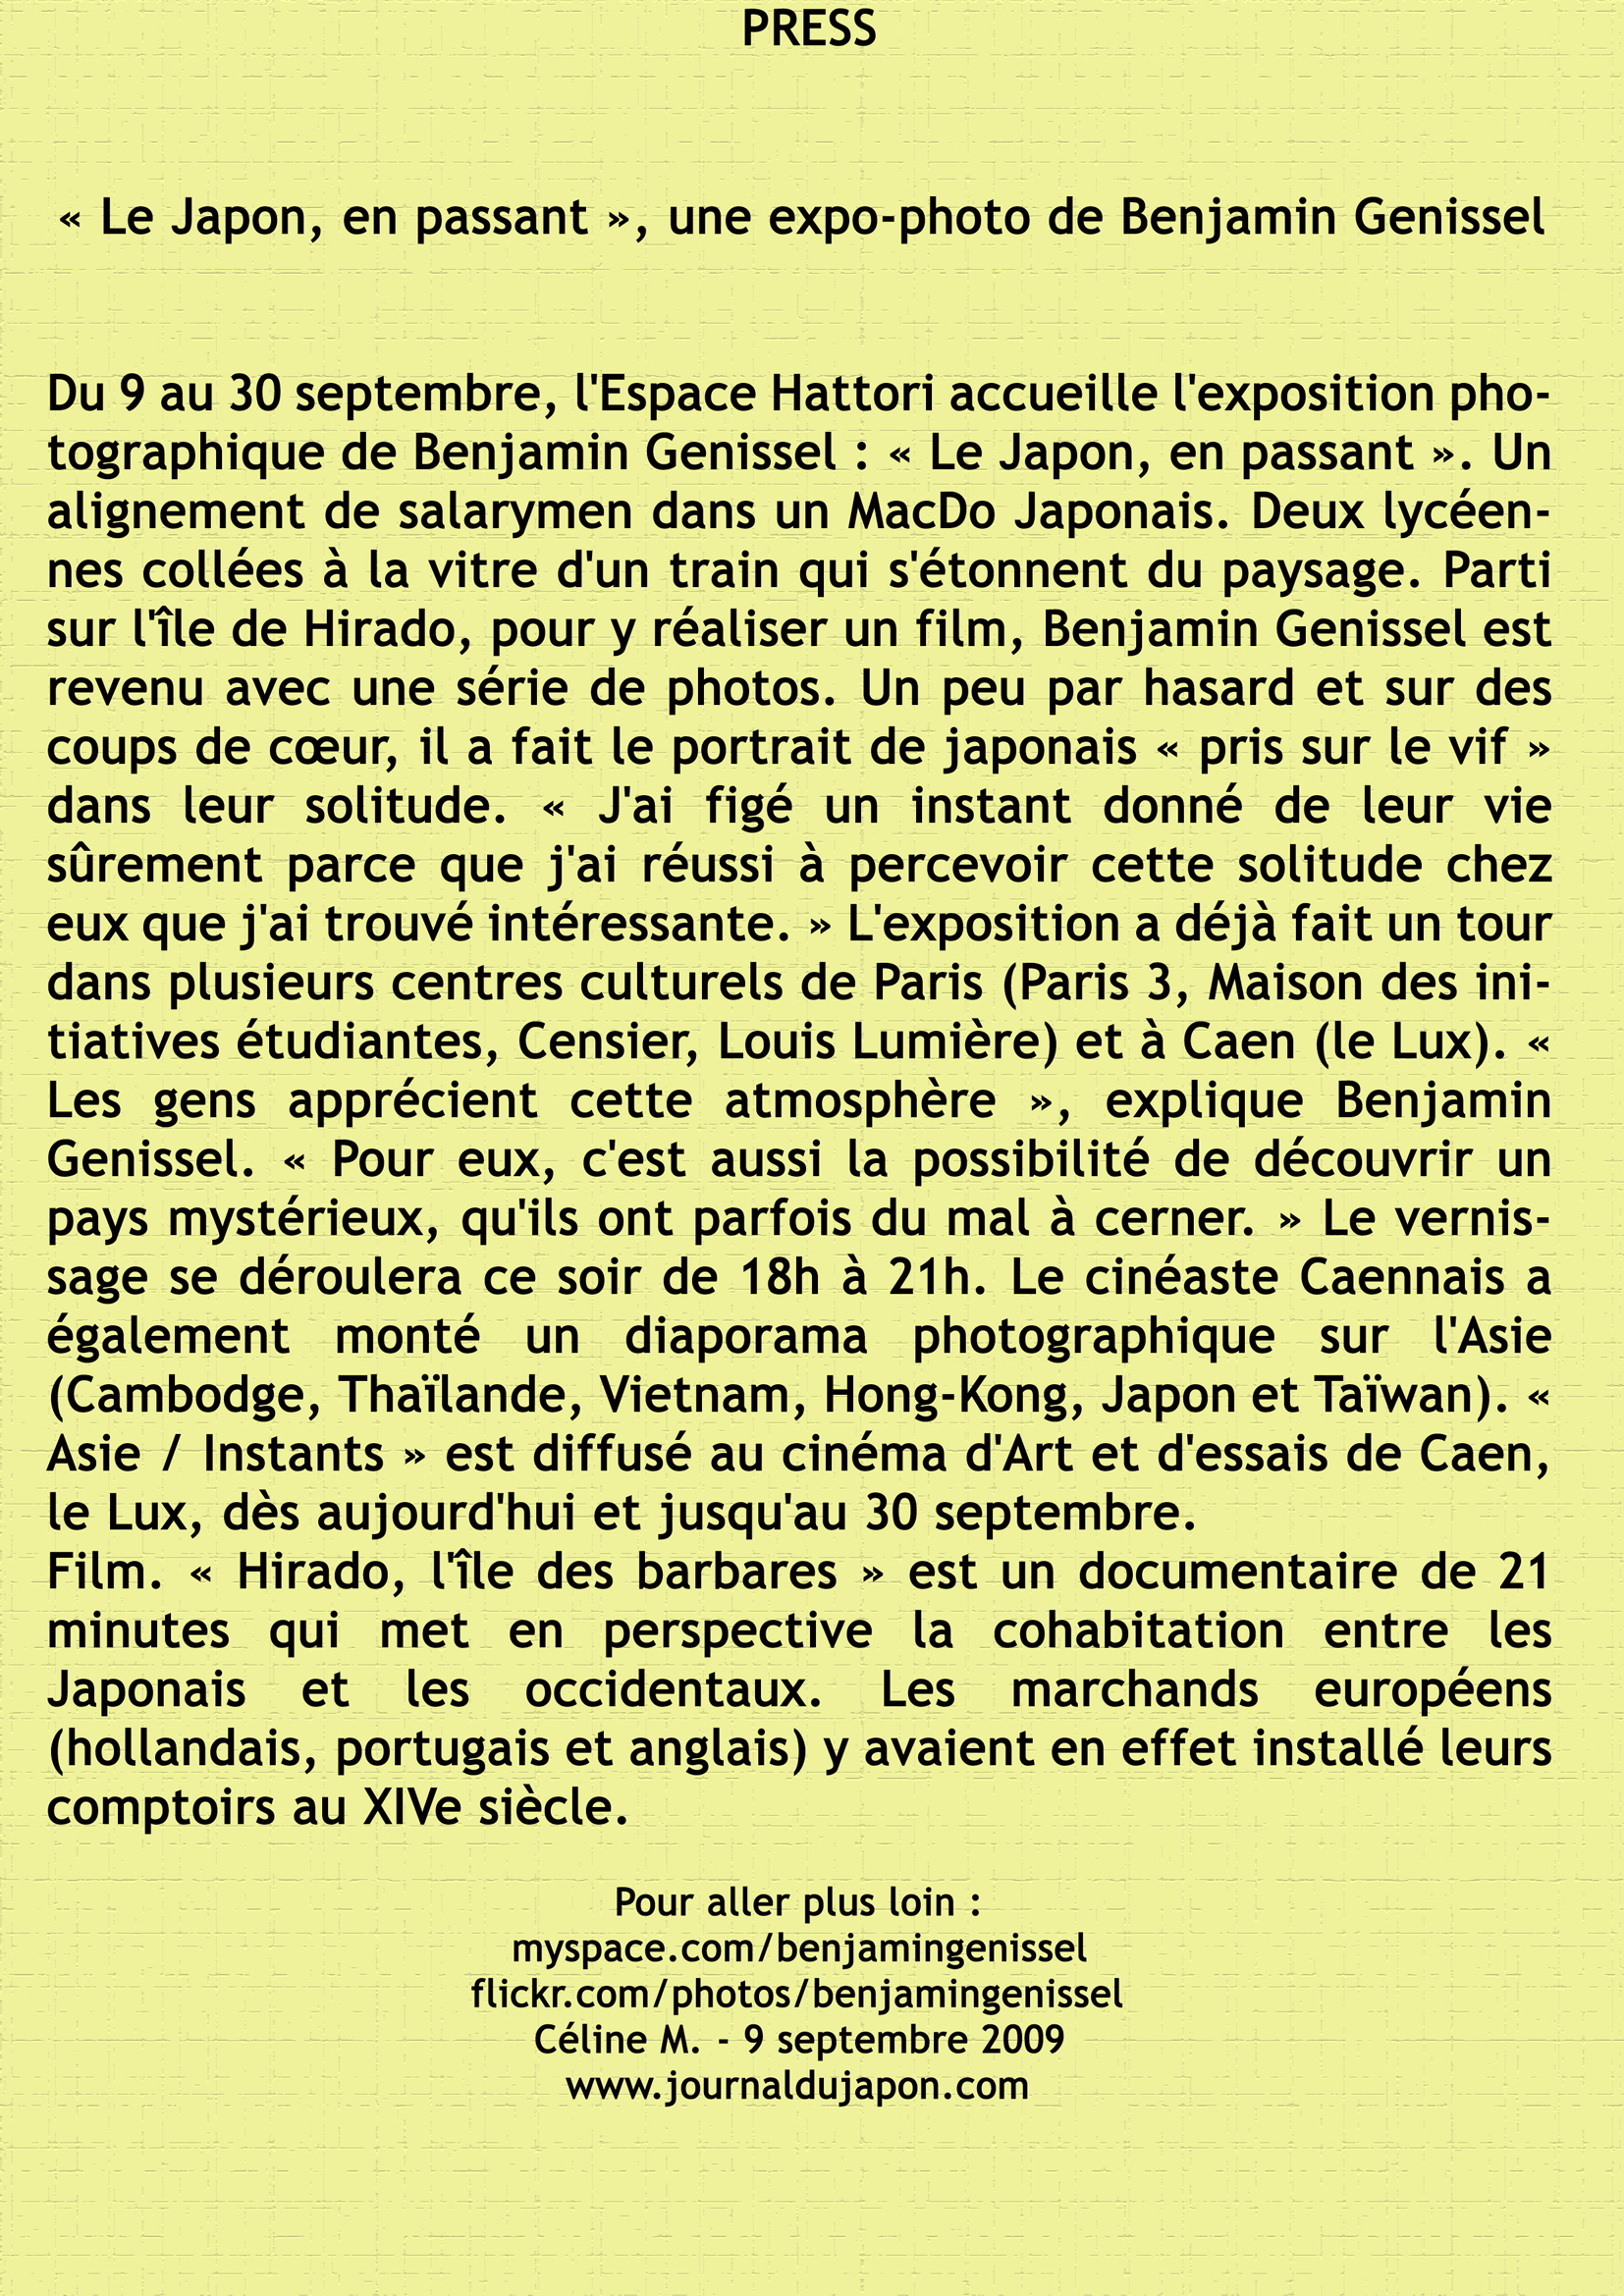 article journal du Japon 2009